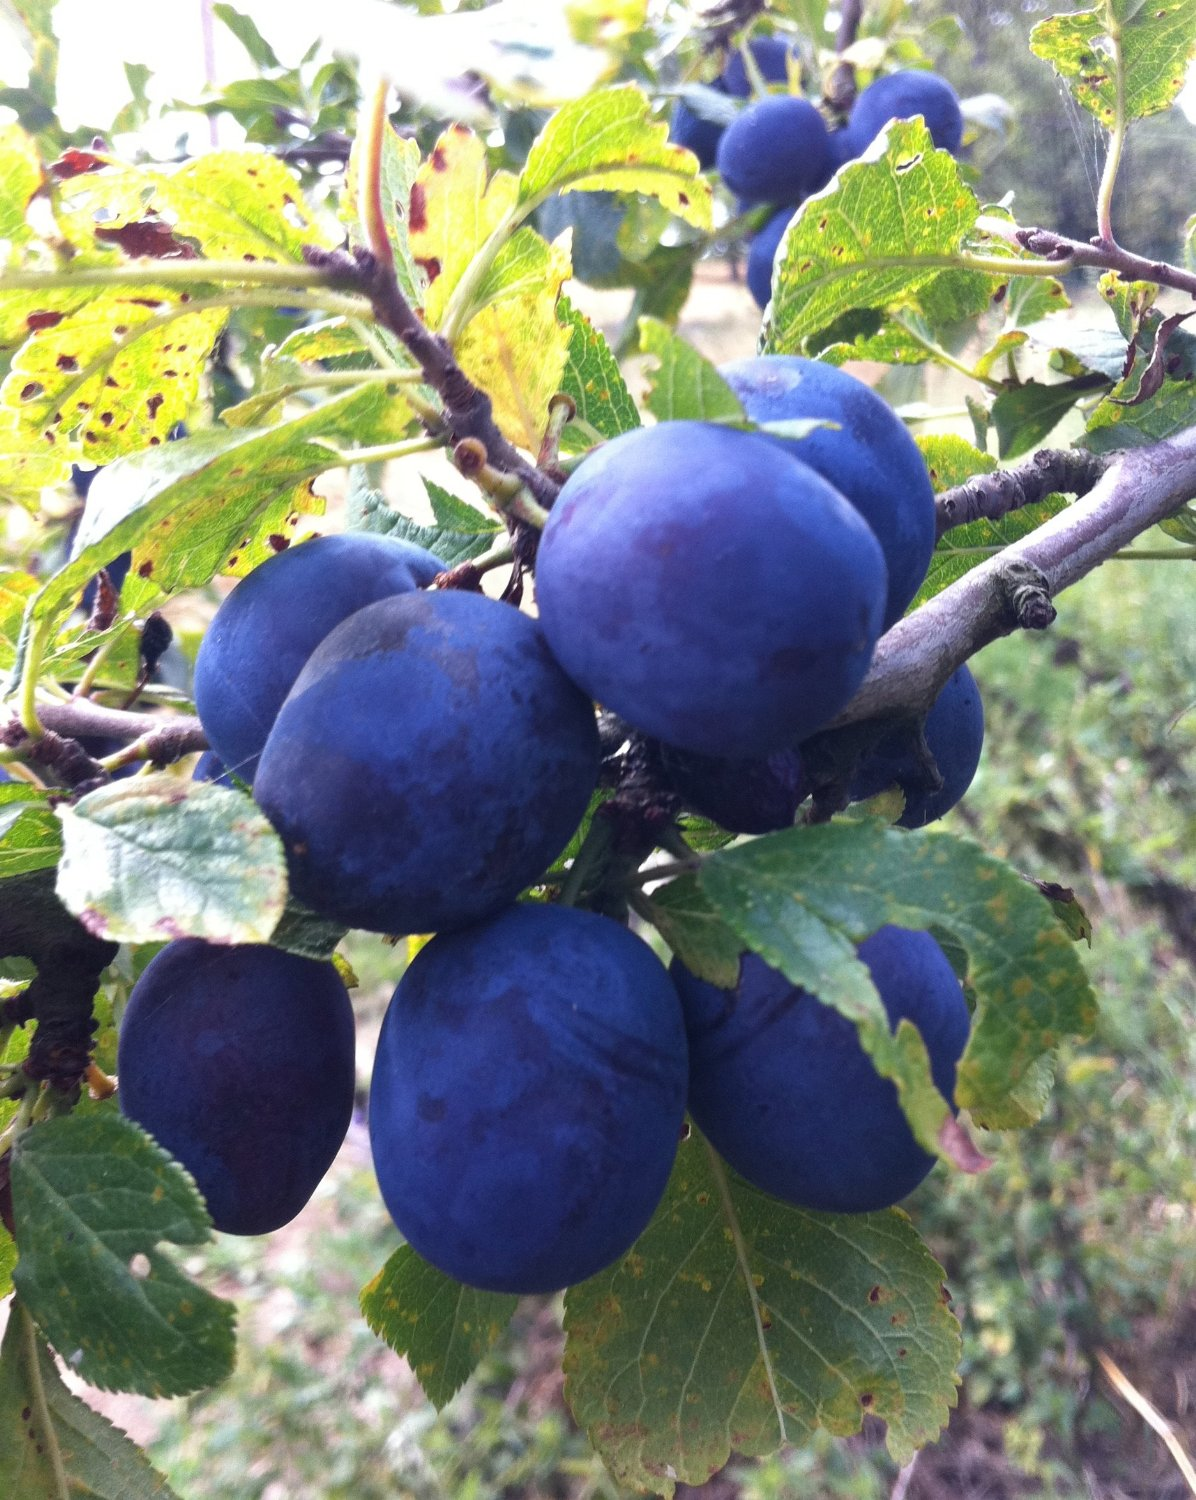 BLUE DAMSON PLUM tree, Very old variety, rugged, vigorous and dependable. Small, round, blue-black plums for jams and jellies.